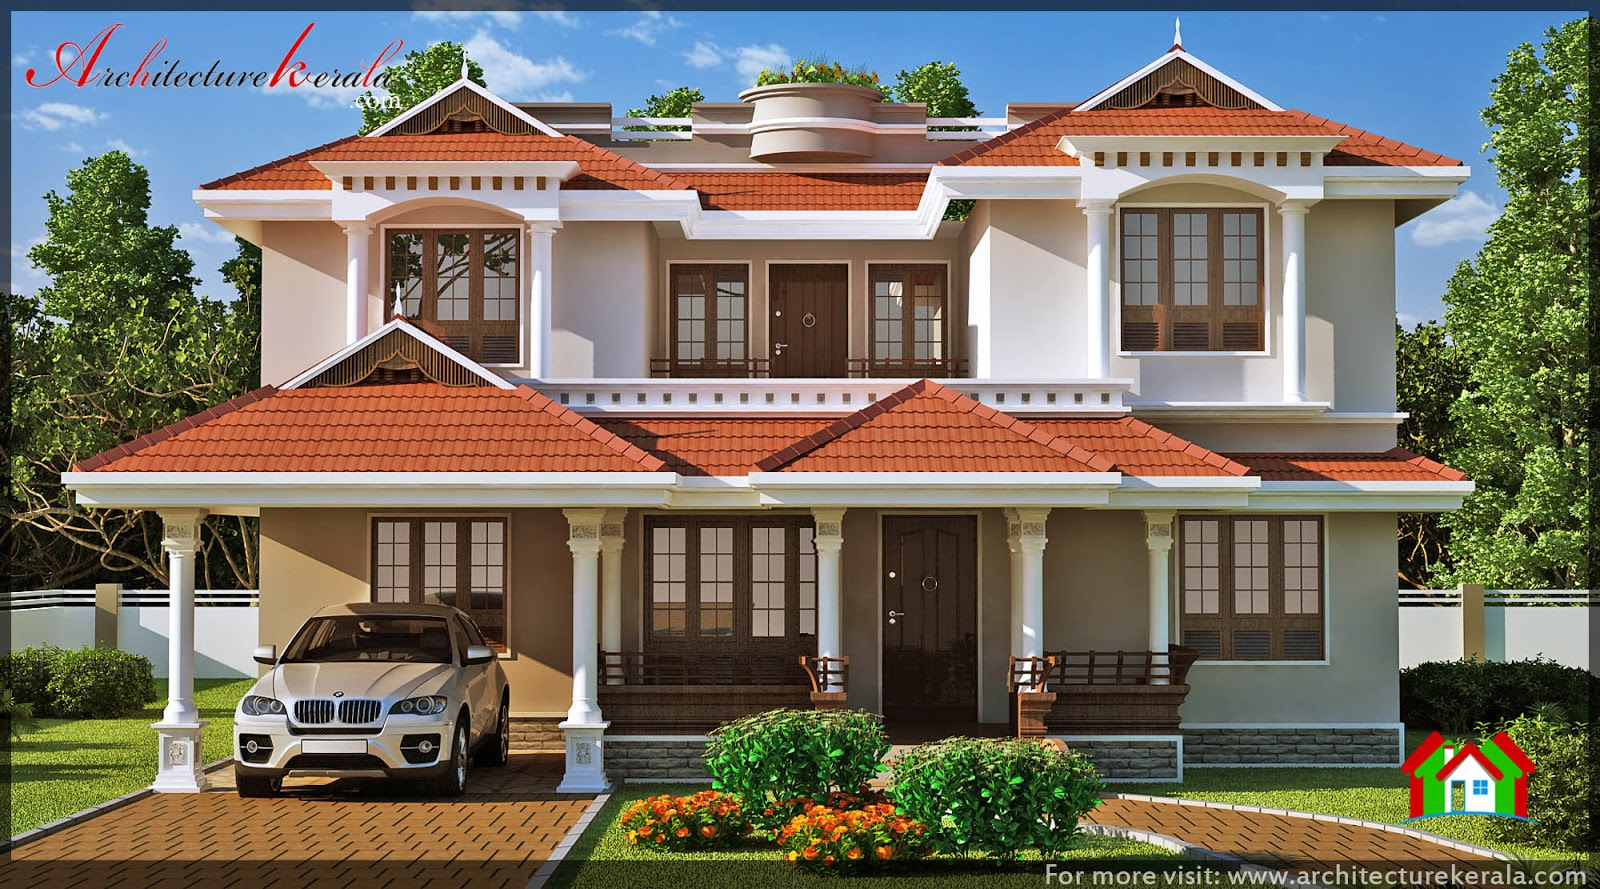 Traditional kerala house elevation architecture kerala for Kerala building elevation